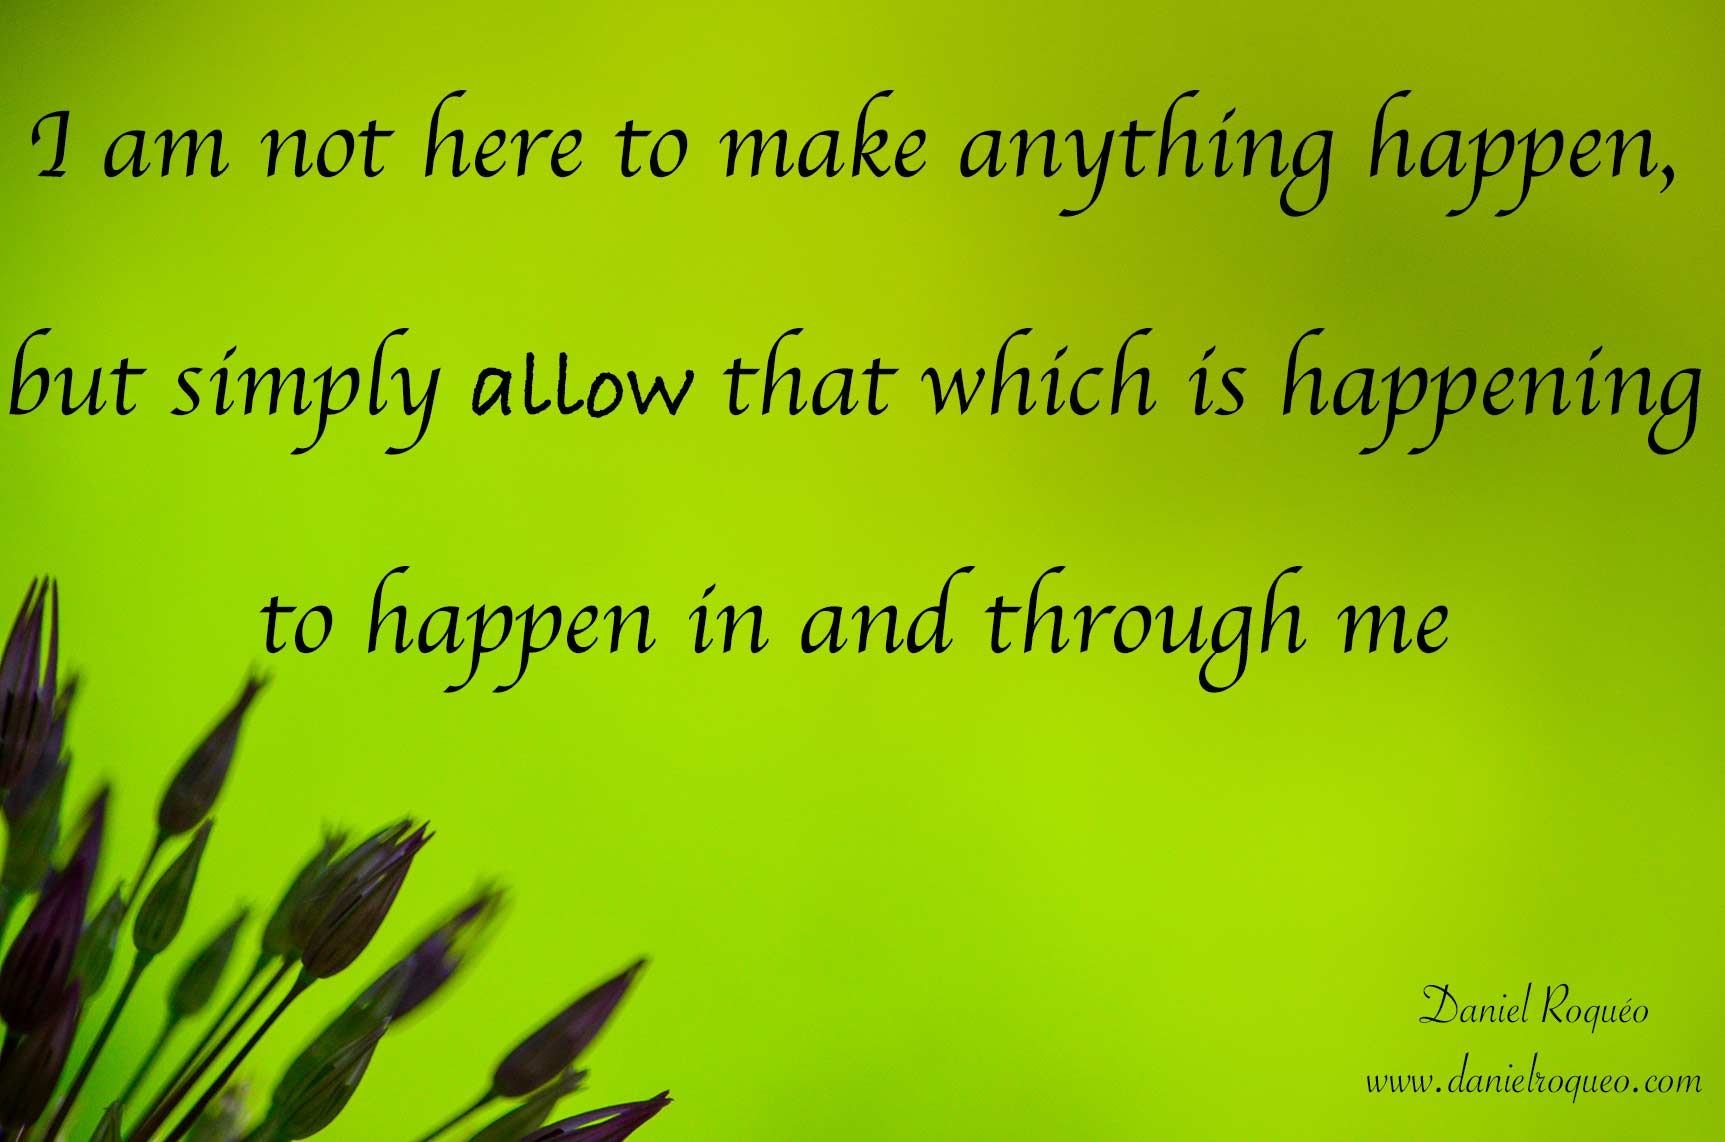 I am not here to make anything happen but rather allow that which is happening to happen in and through me